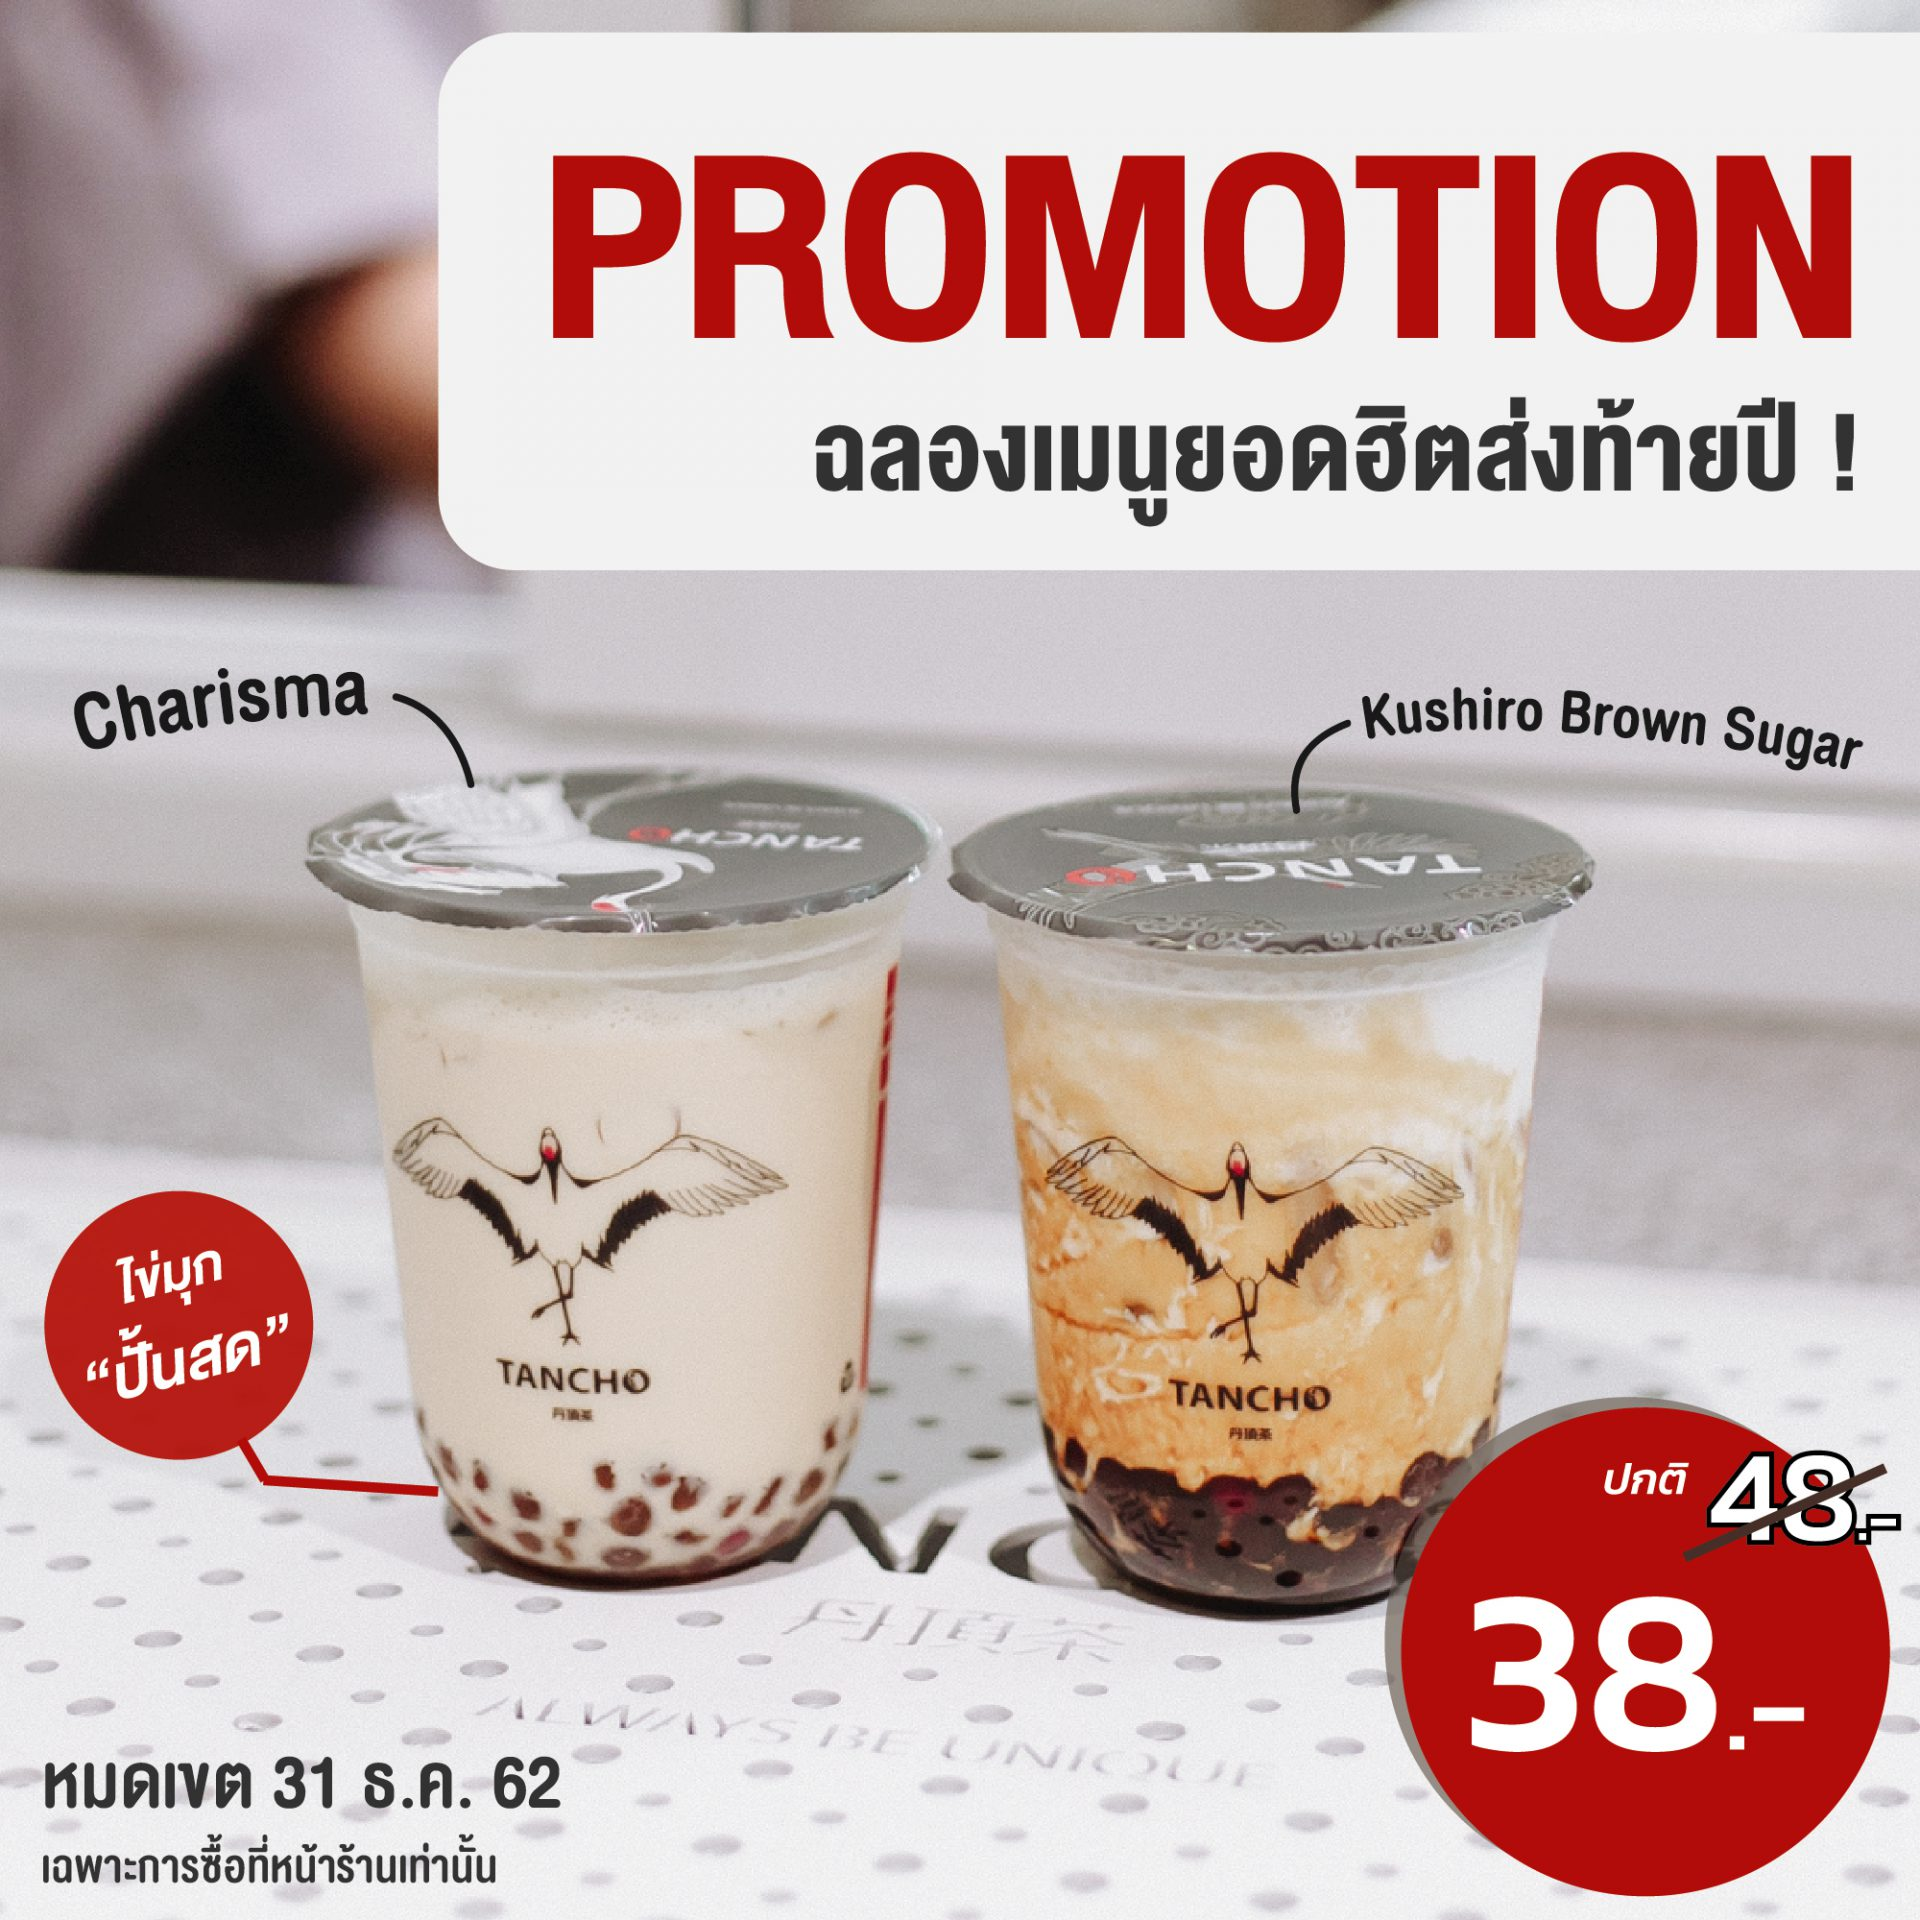 promotion best selling tanchocha product